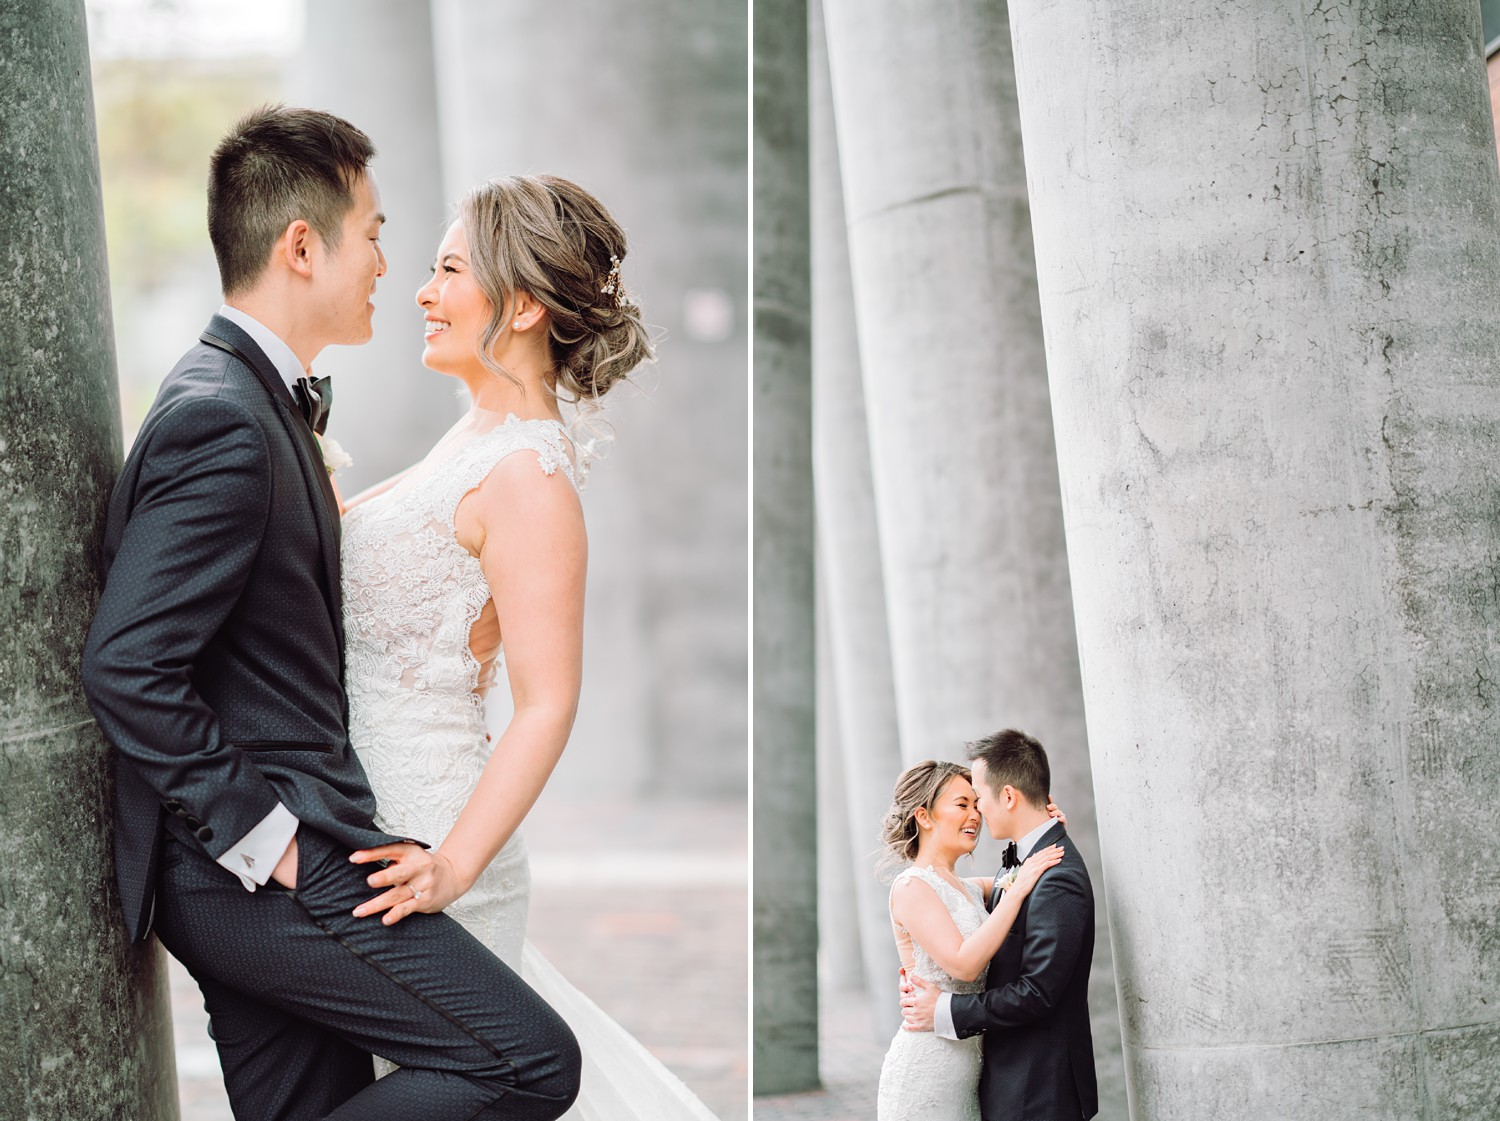 Bride_Groom_Archeo_Distillery_District_Wedding_Photos_Toronto_Destination_Wedding_Photographer-Rhythm_Photography